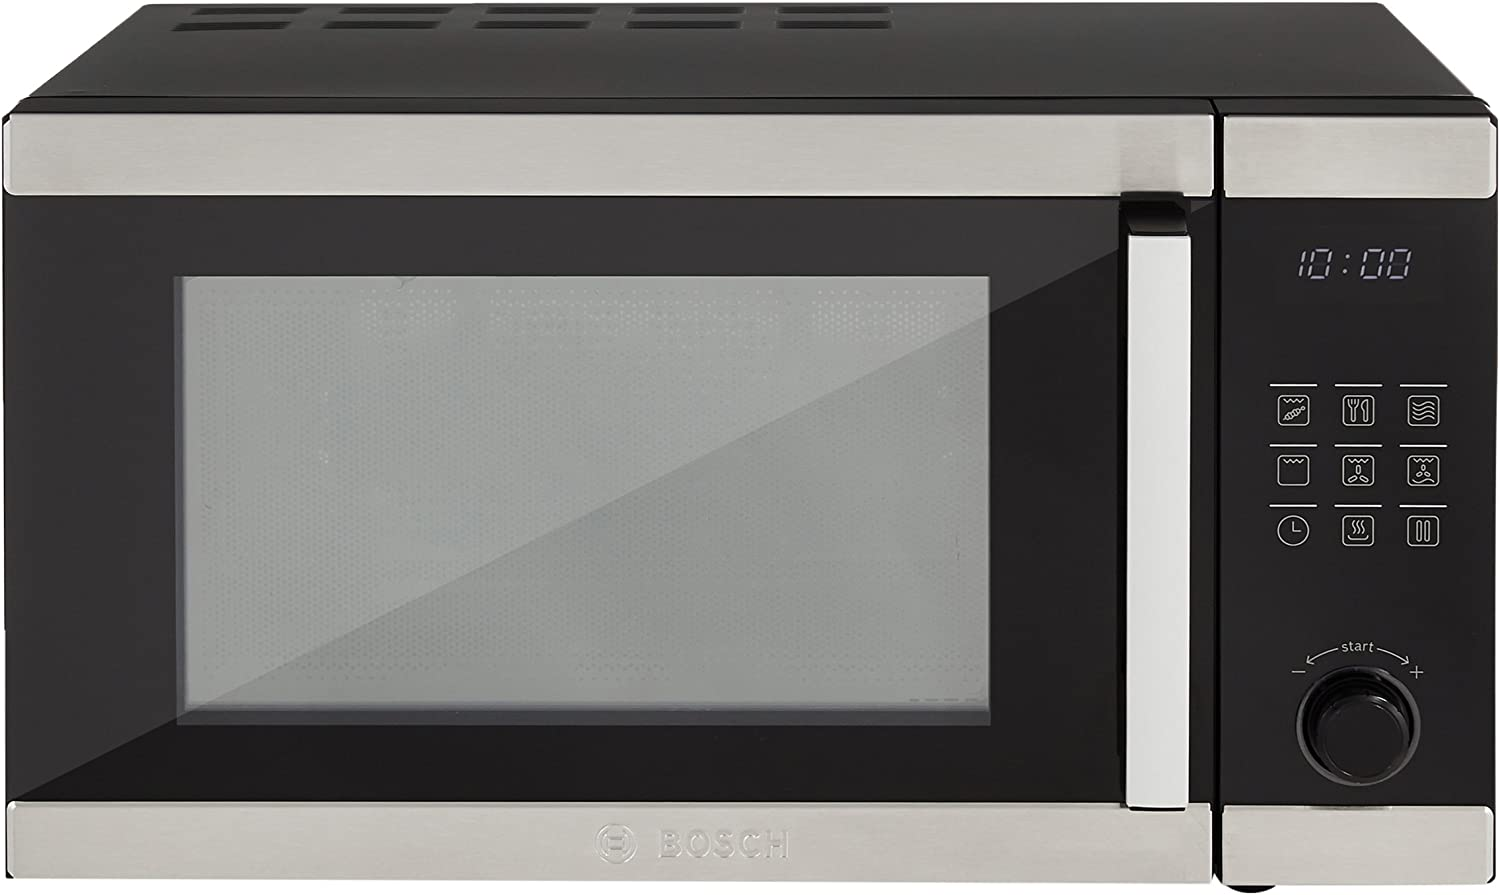 Bosch 23 L Best Convection Microwave Oven